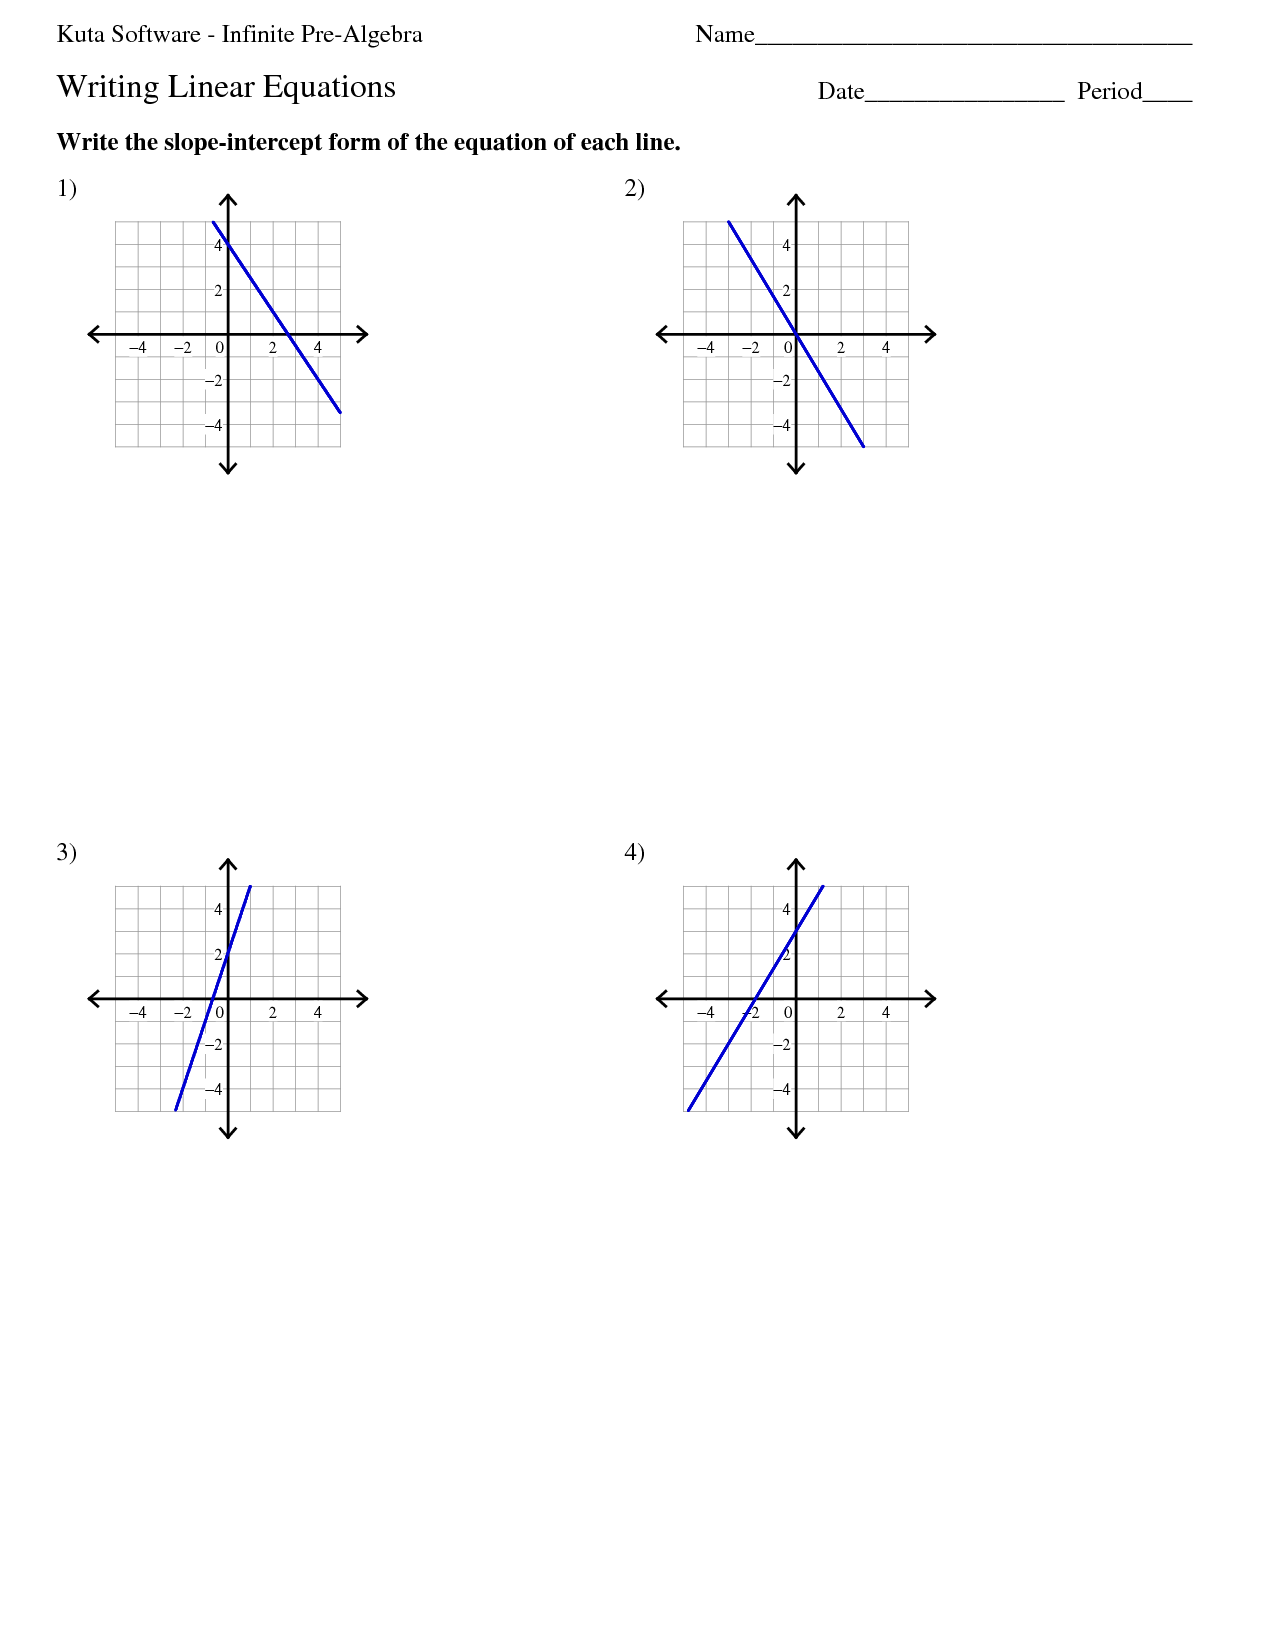 Bridge Algebra Worksheet Answers